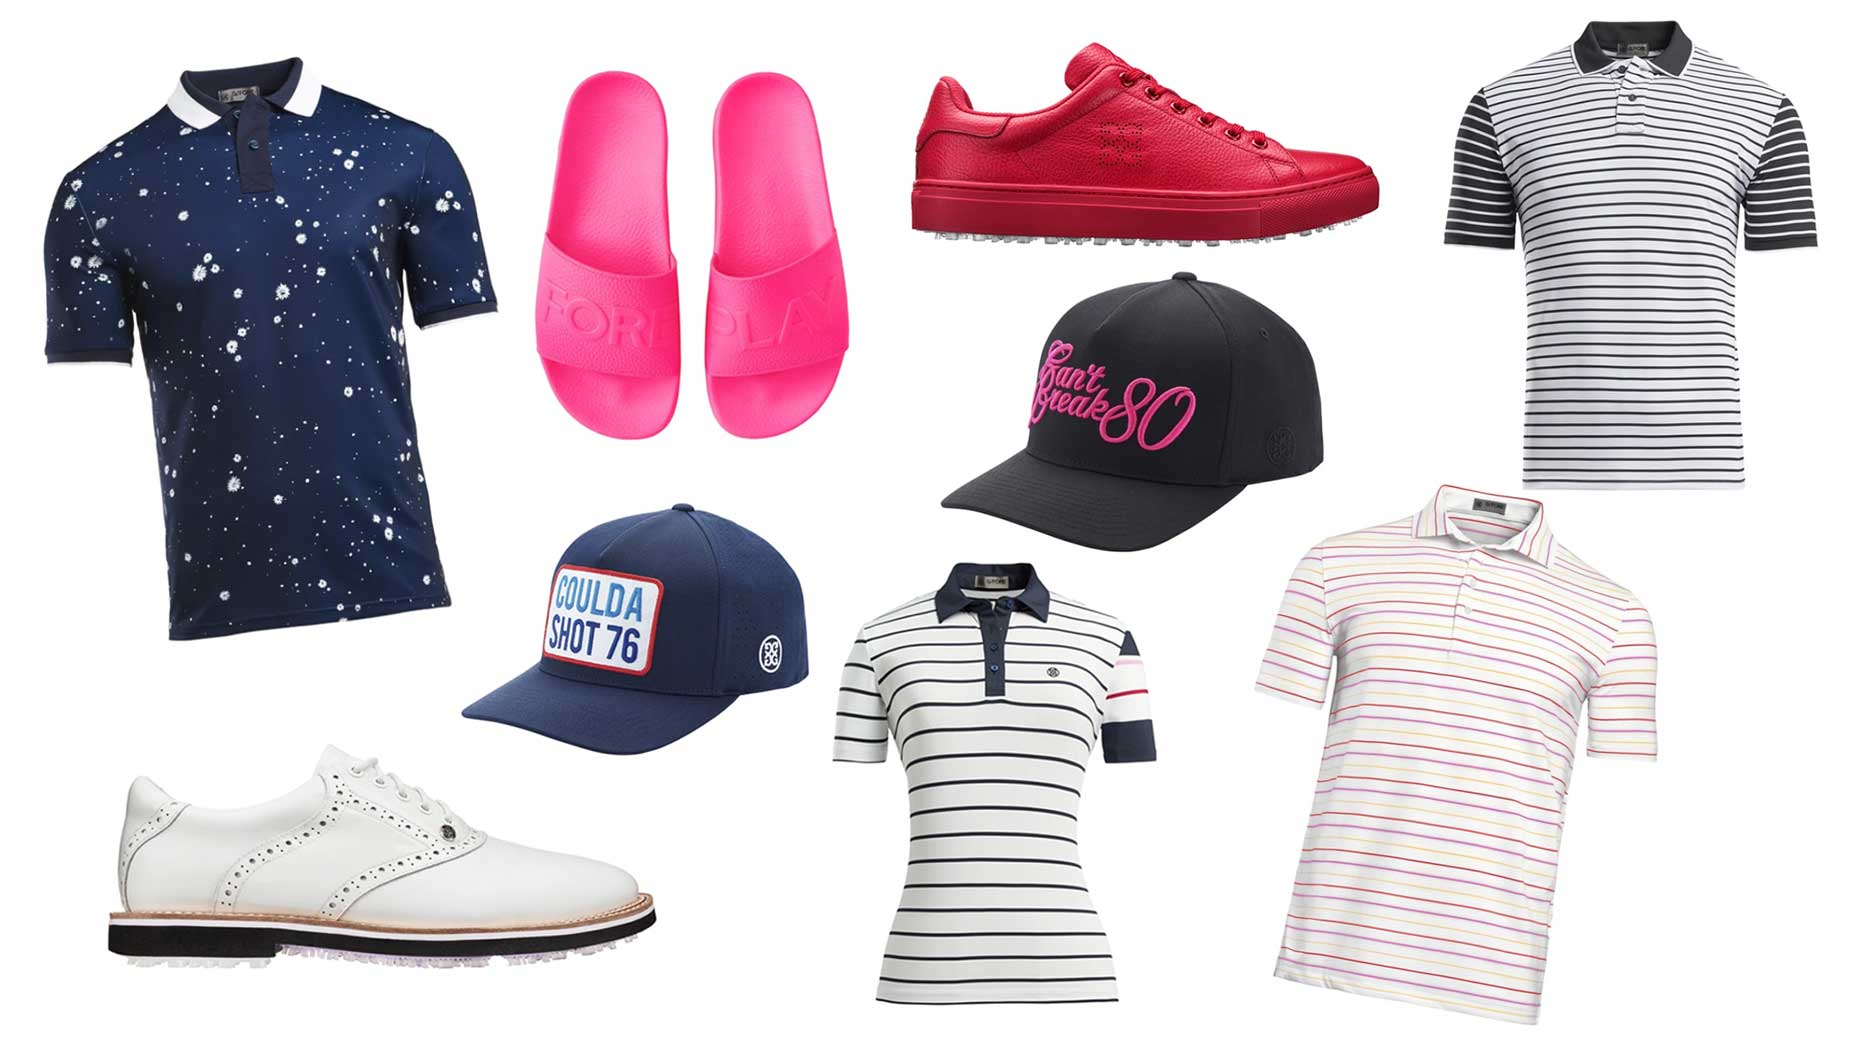 clothes, shoes and accessories from G/Fore